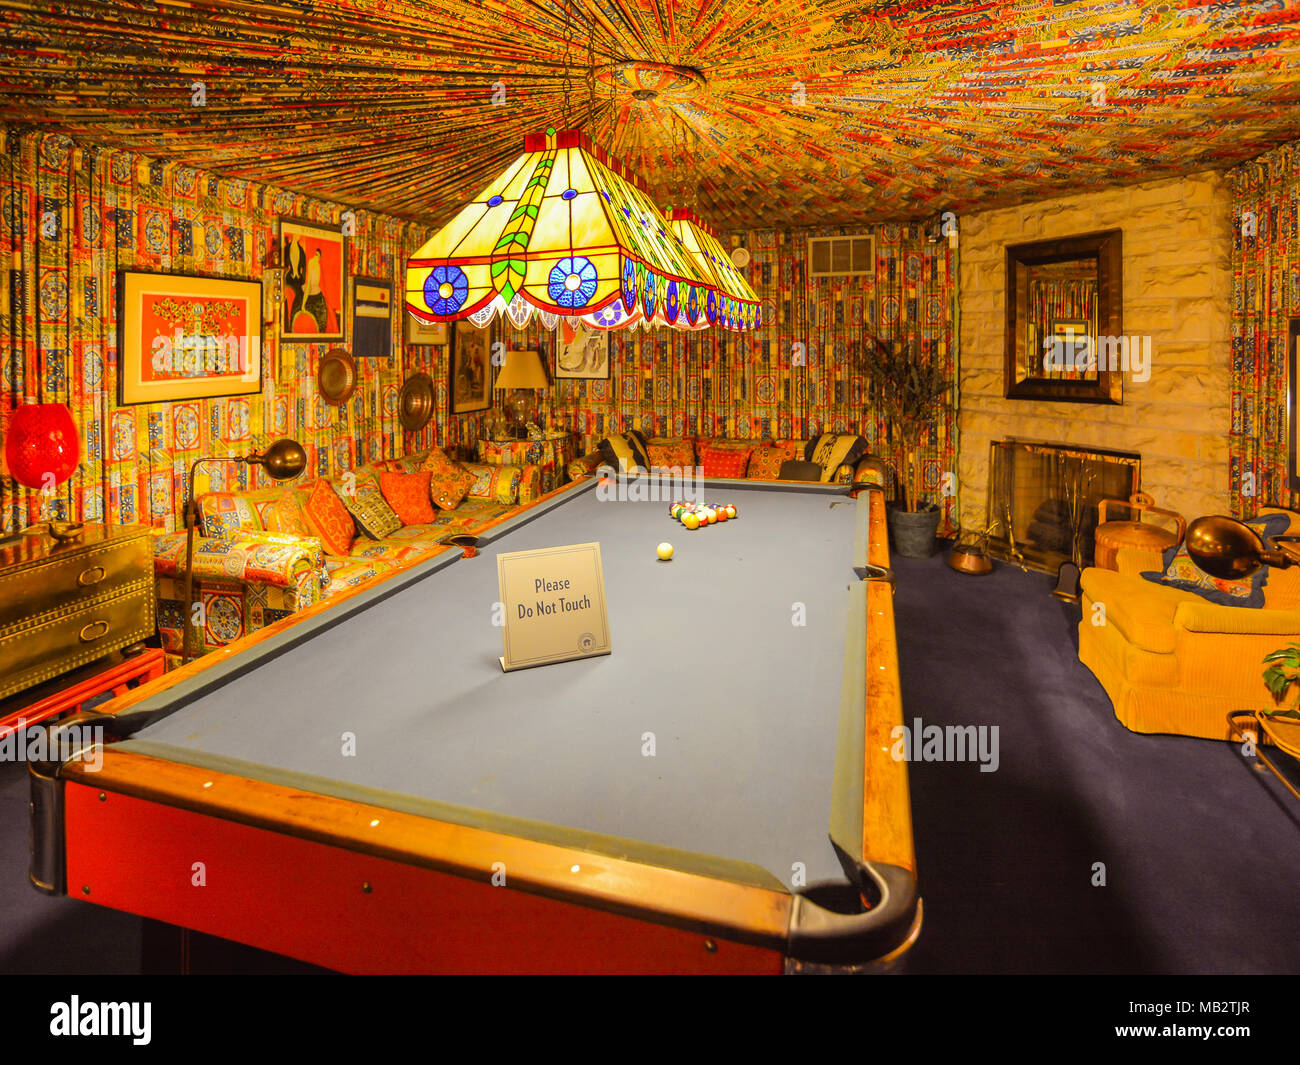 Memphis, TN - Sep. 21, 2017: Pool room in Elvis Presley's Graceland Mansion. The mansion had been placed in the National Register of Historic Places. - Stock Image